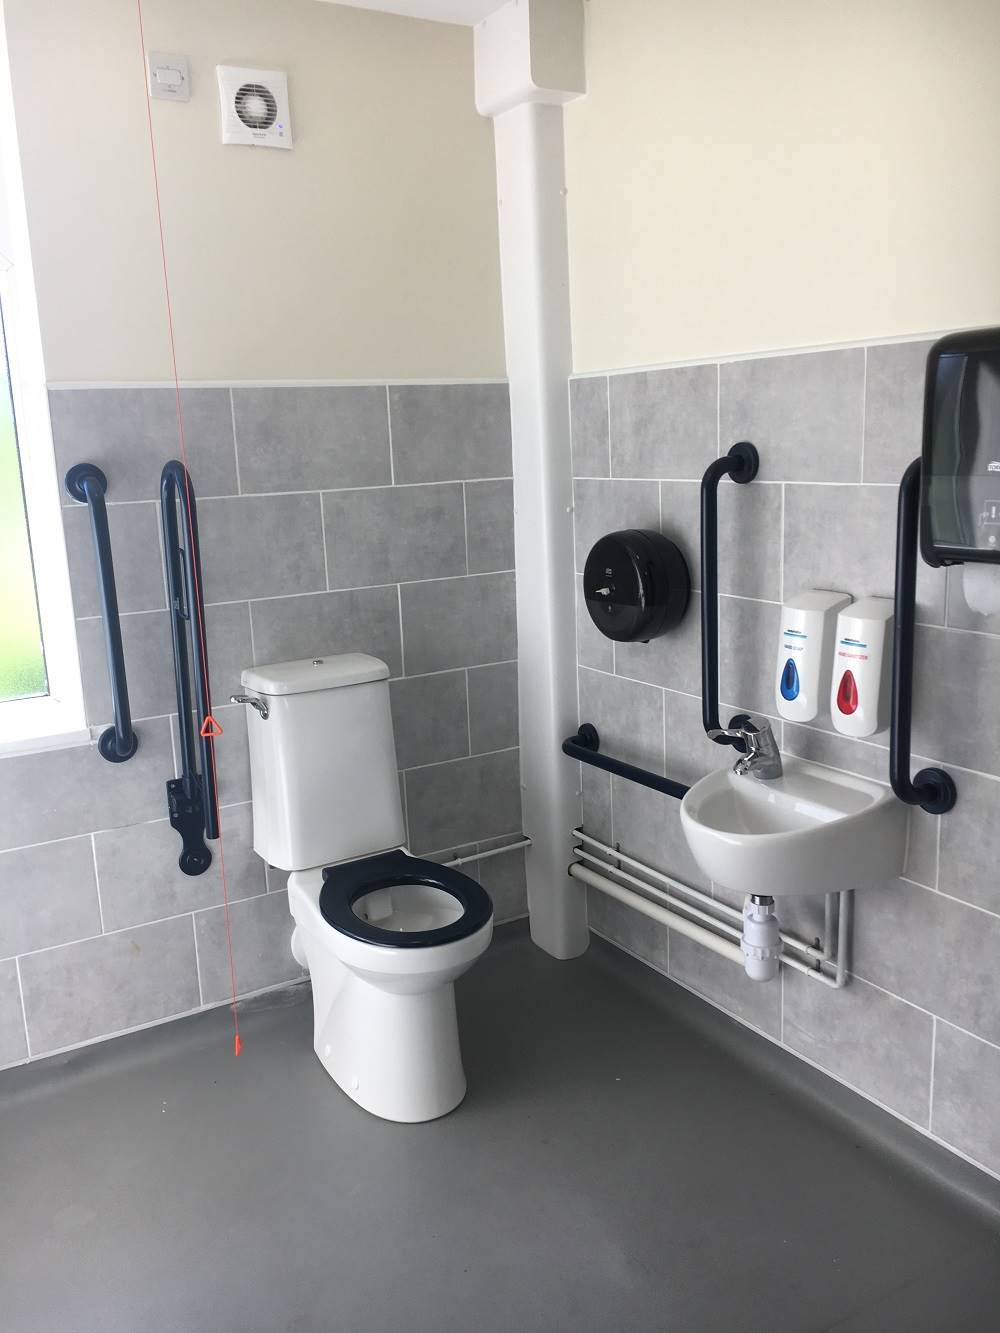 dementia-friendly bathroom environments